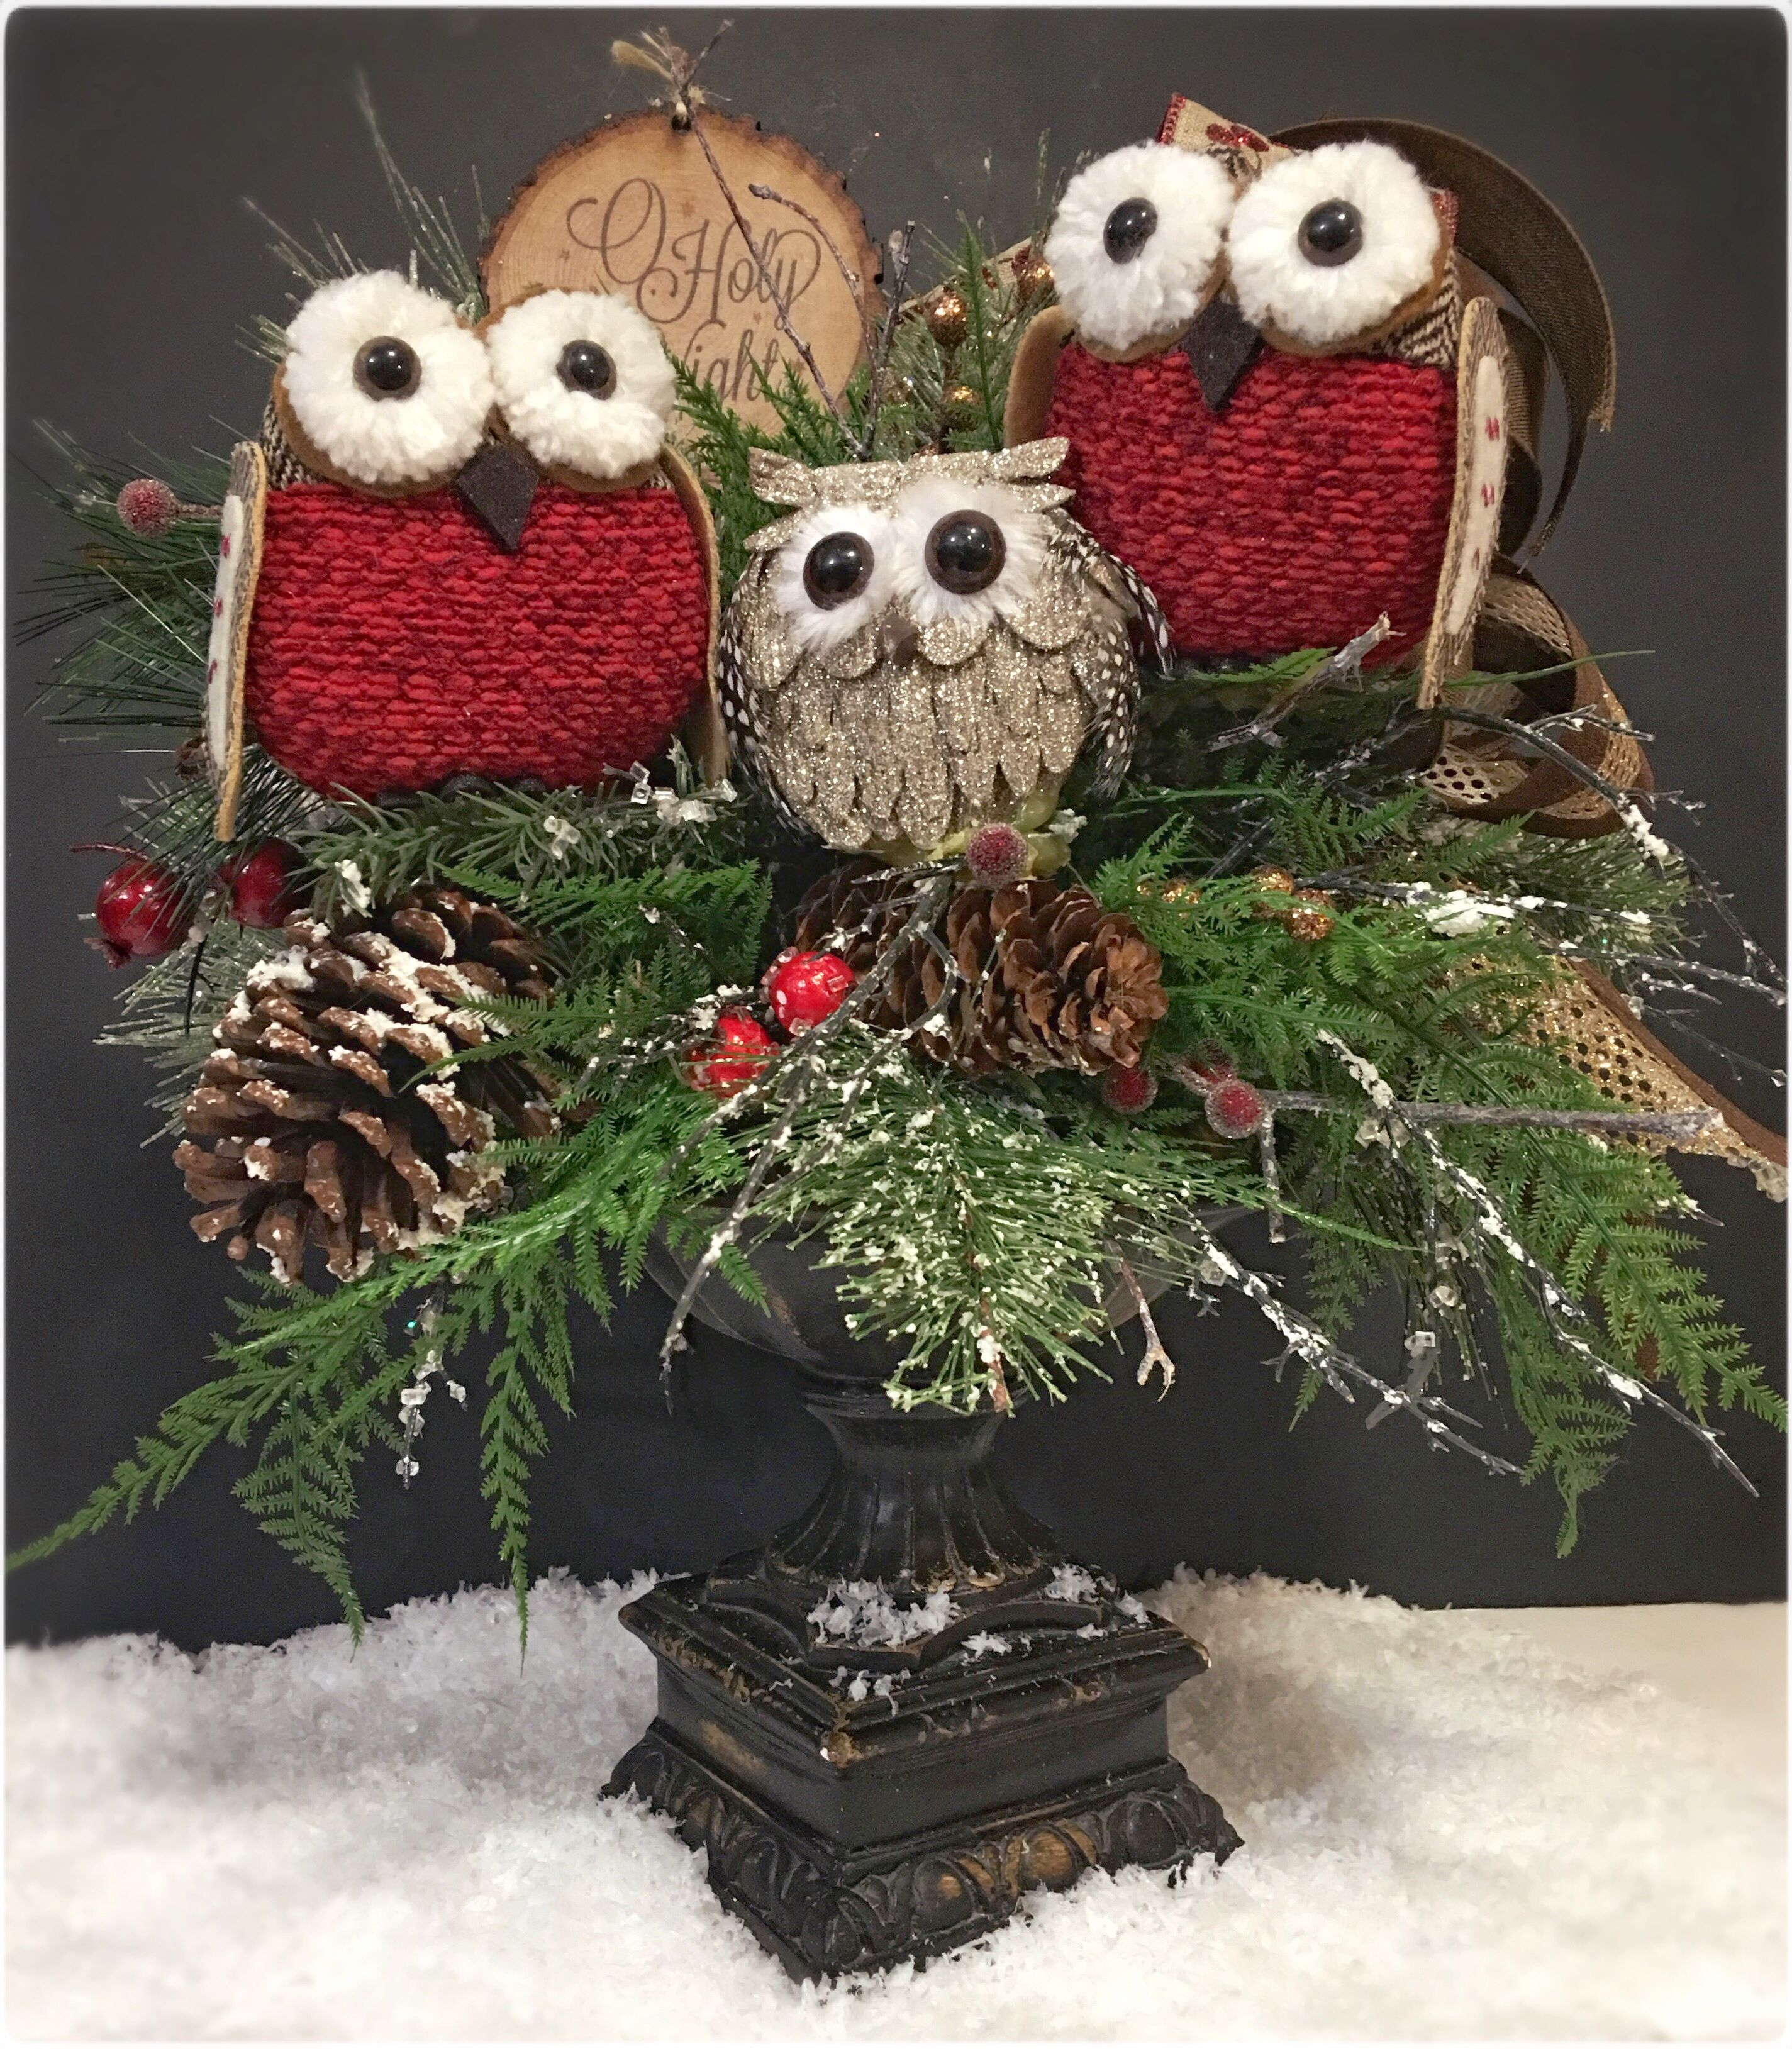 Cutest little owl family httpswwwetsycomlisting569070075